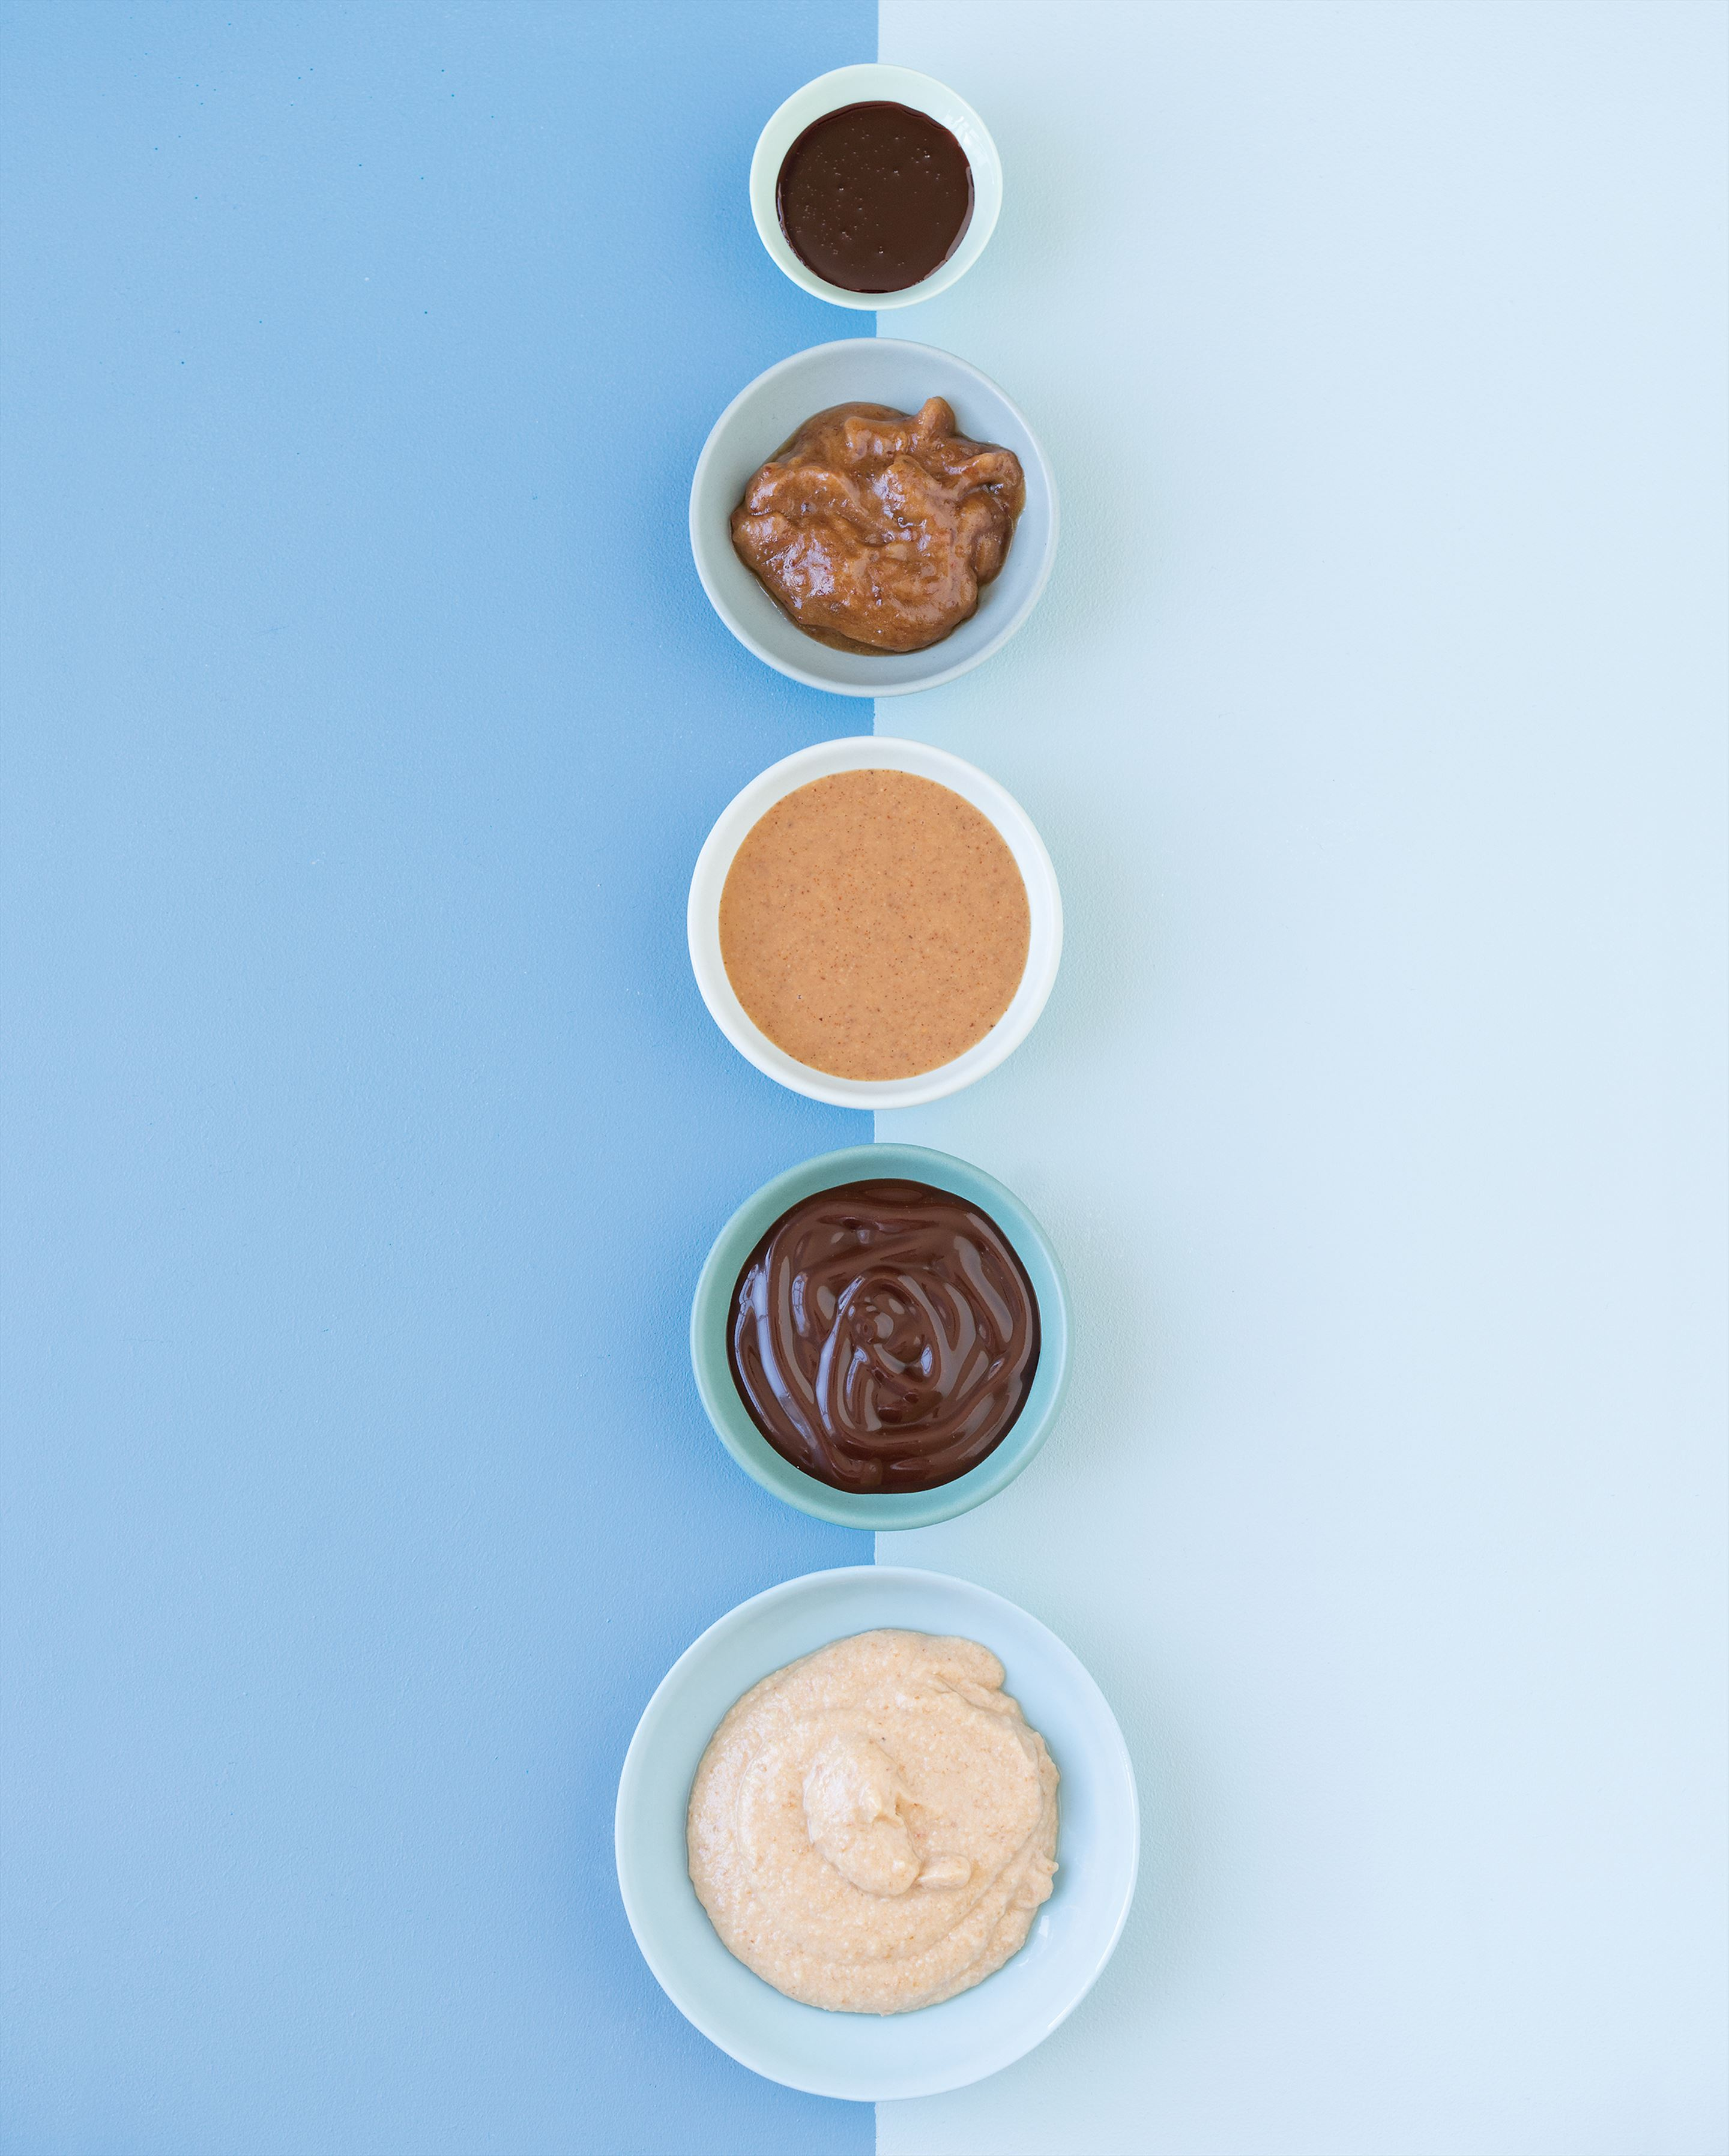 Three ingredient salted caramel sauce